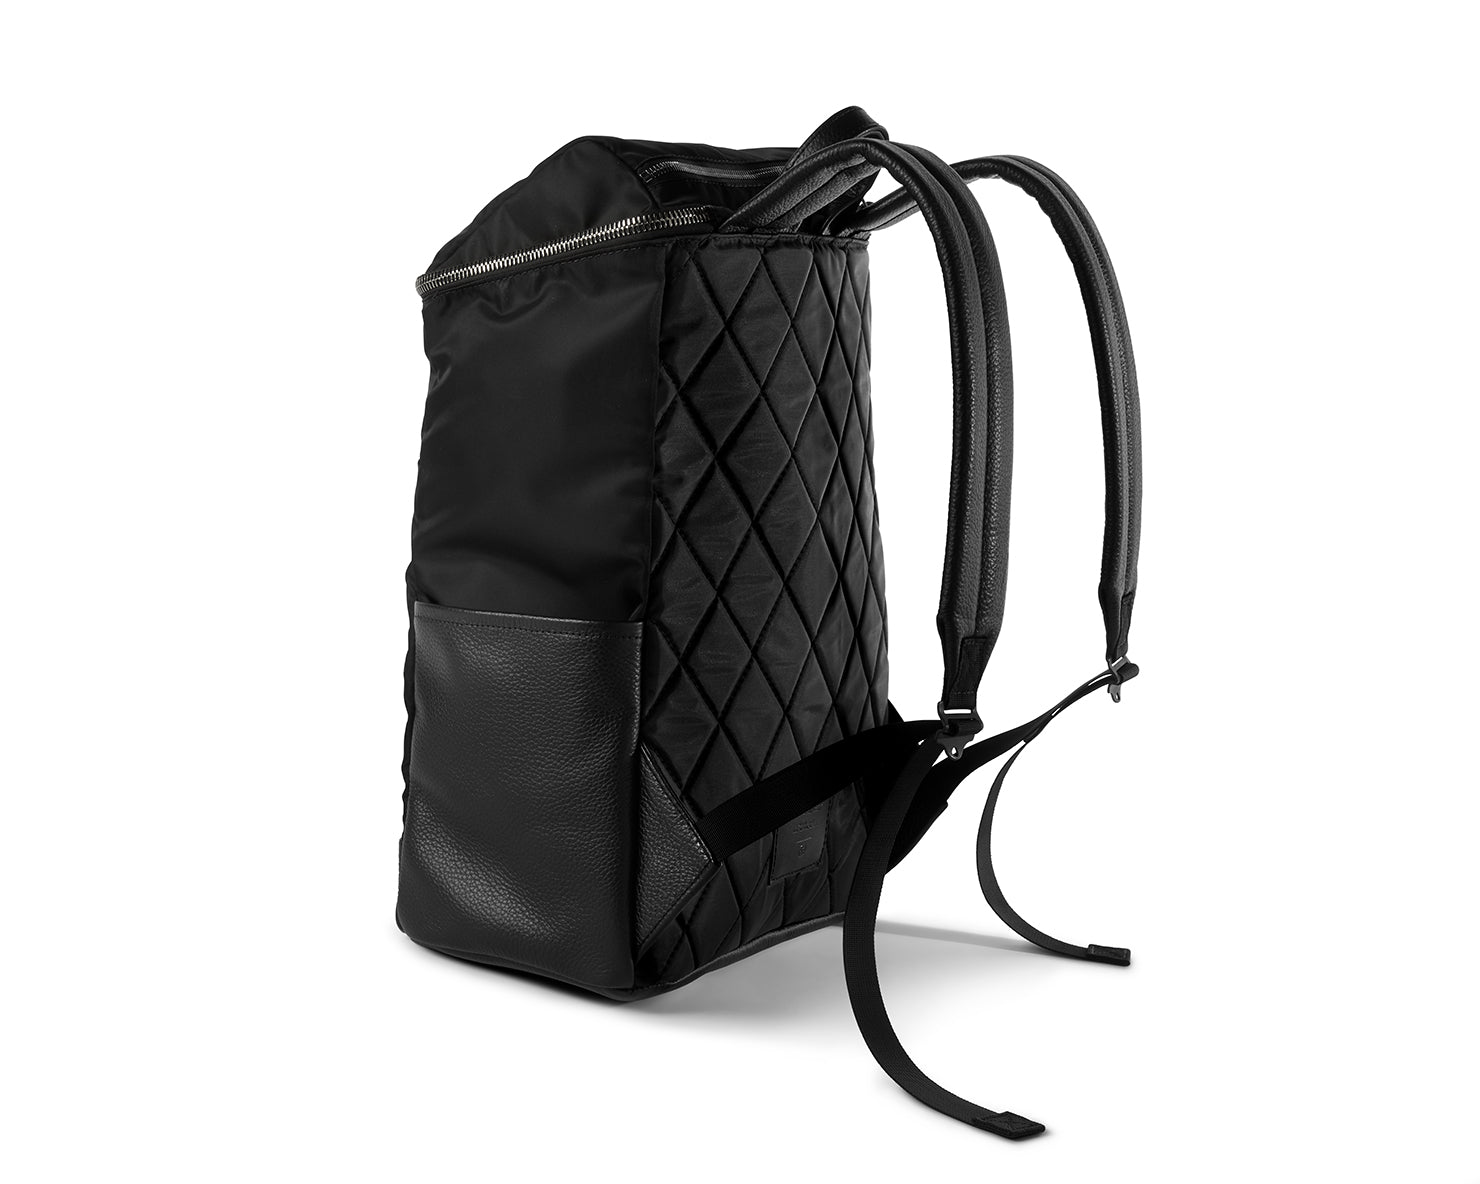 R-22 RUCKSACK | KILLSPENCER® - Black Italian Nylon and Leather